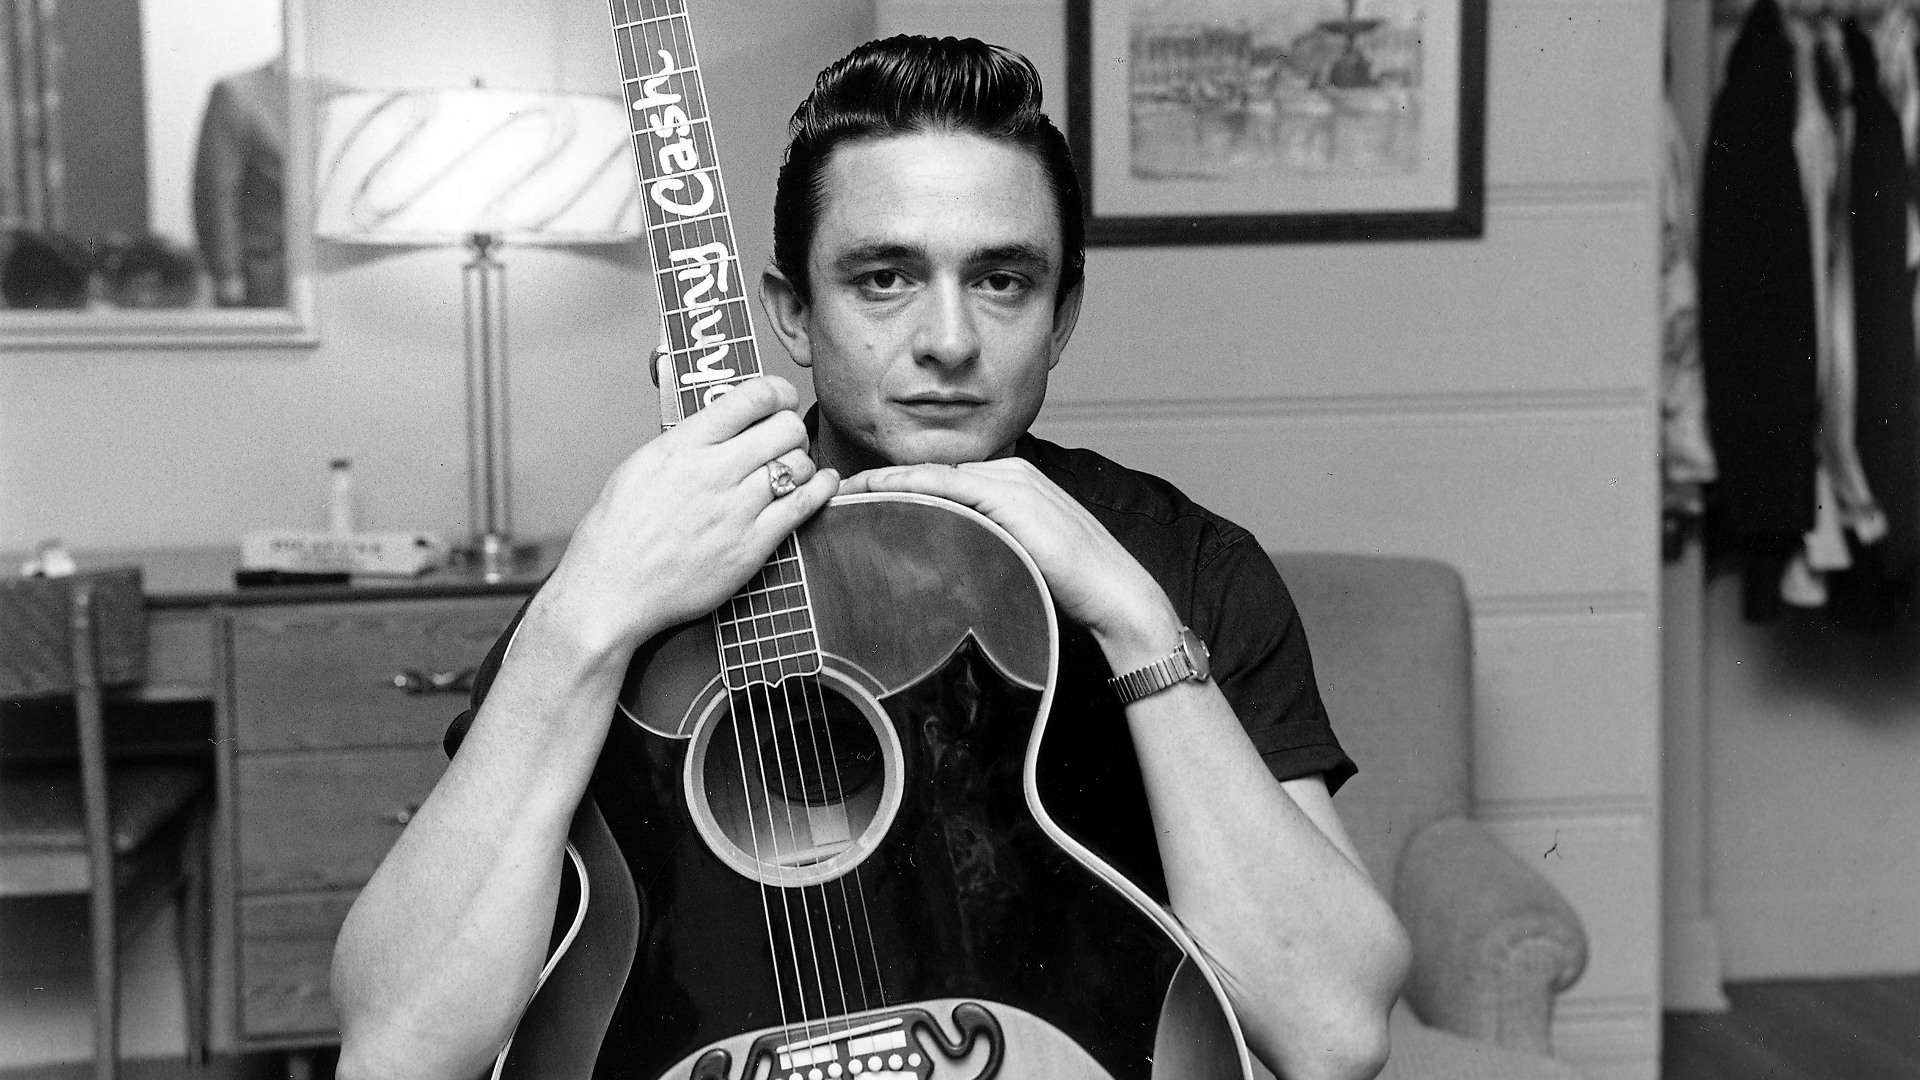 #Podcast Rocktospectiva hacia la vida de Johnny Cash